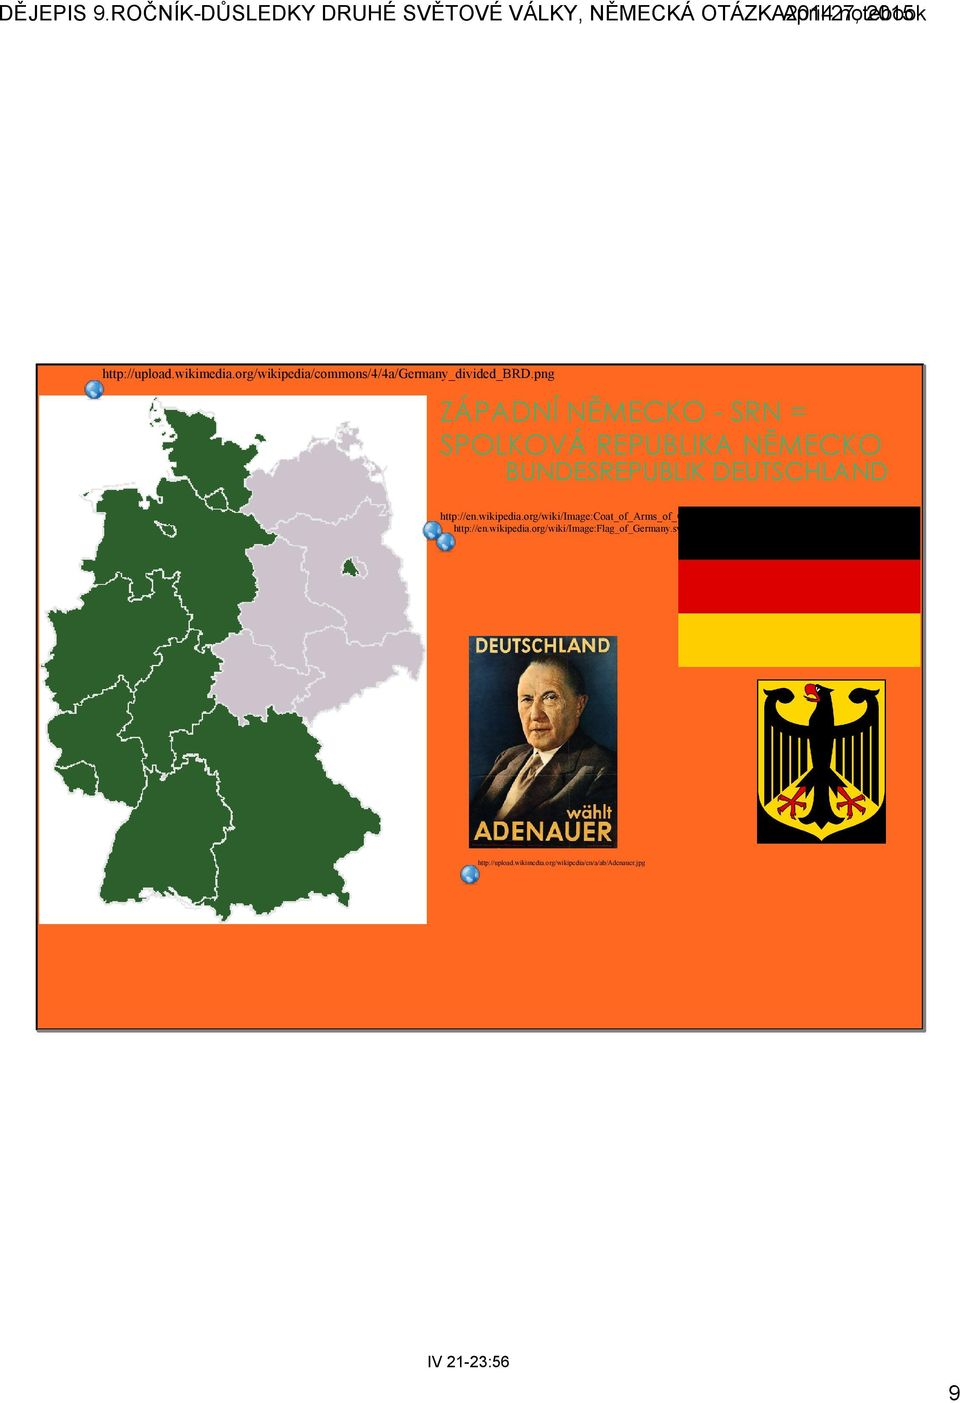 http://en.wikipedia.org/wiki/image:coat_of_arms_of_germany.svg http://en.wikipedia.org/wiki/image:flag_of_germany.